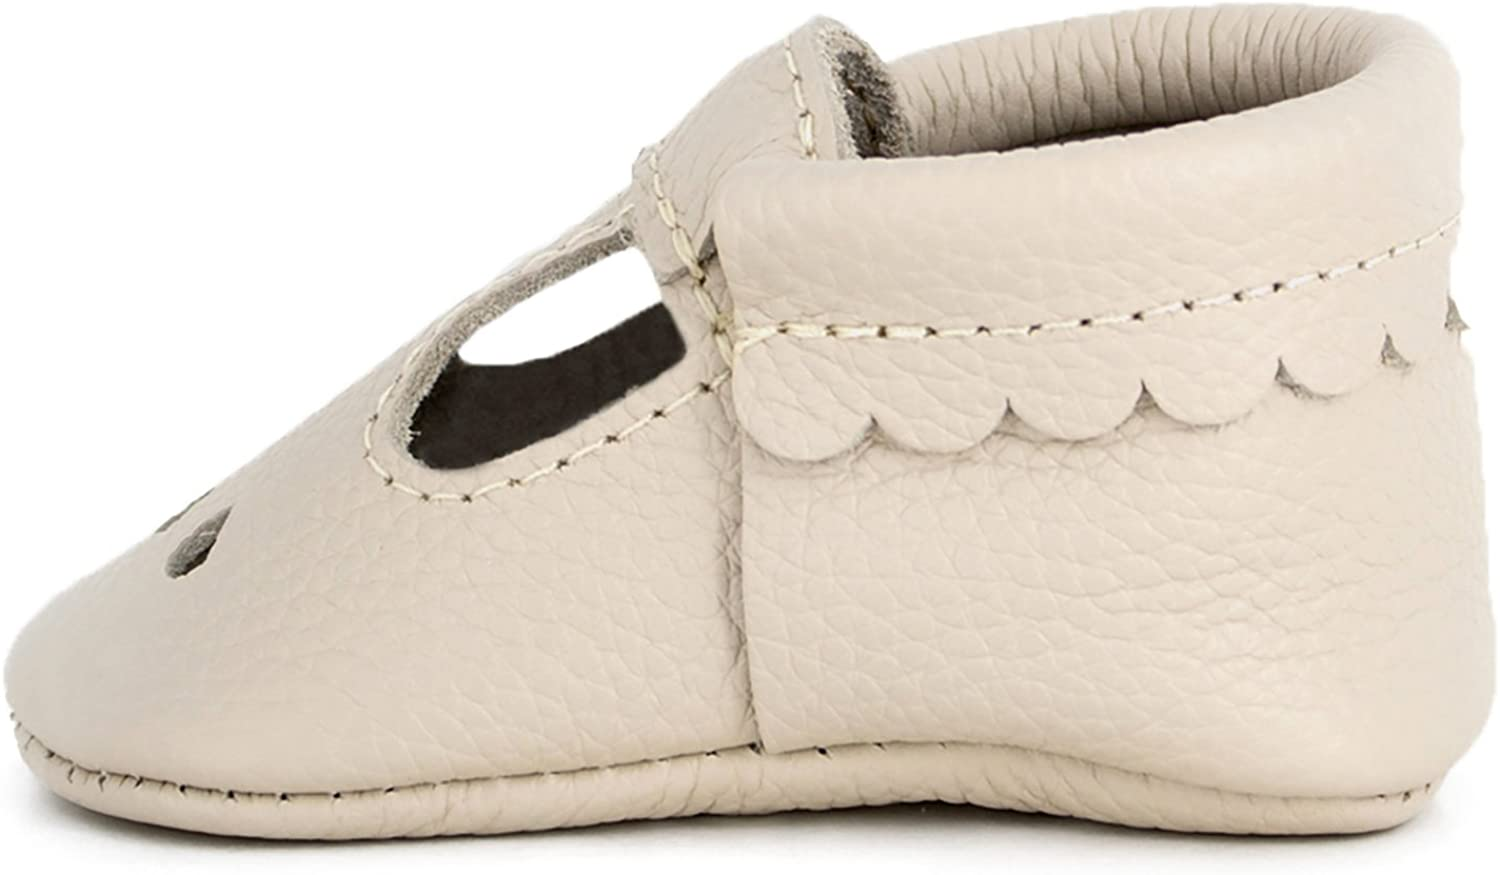 Freshly Finally popular brand Ranking TOP5 Picked - Soft Sole Leather Jane Mary Baby Moccasins Gi